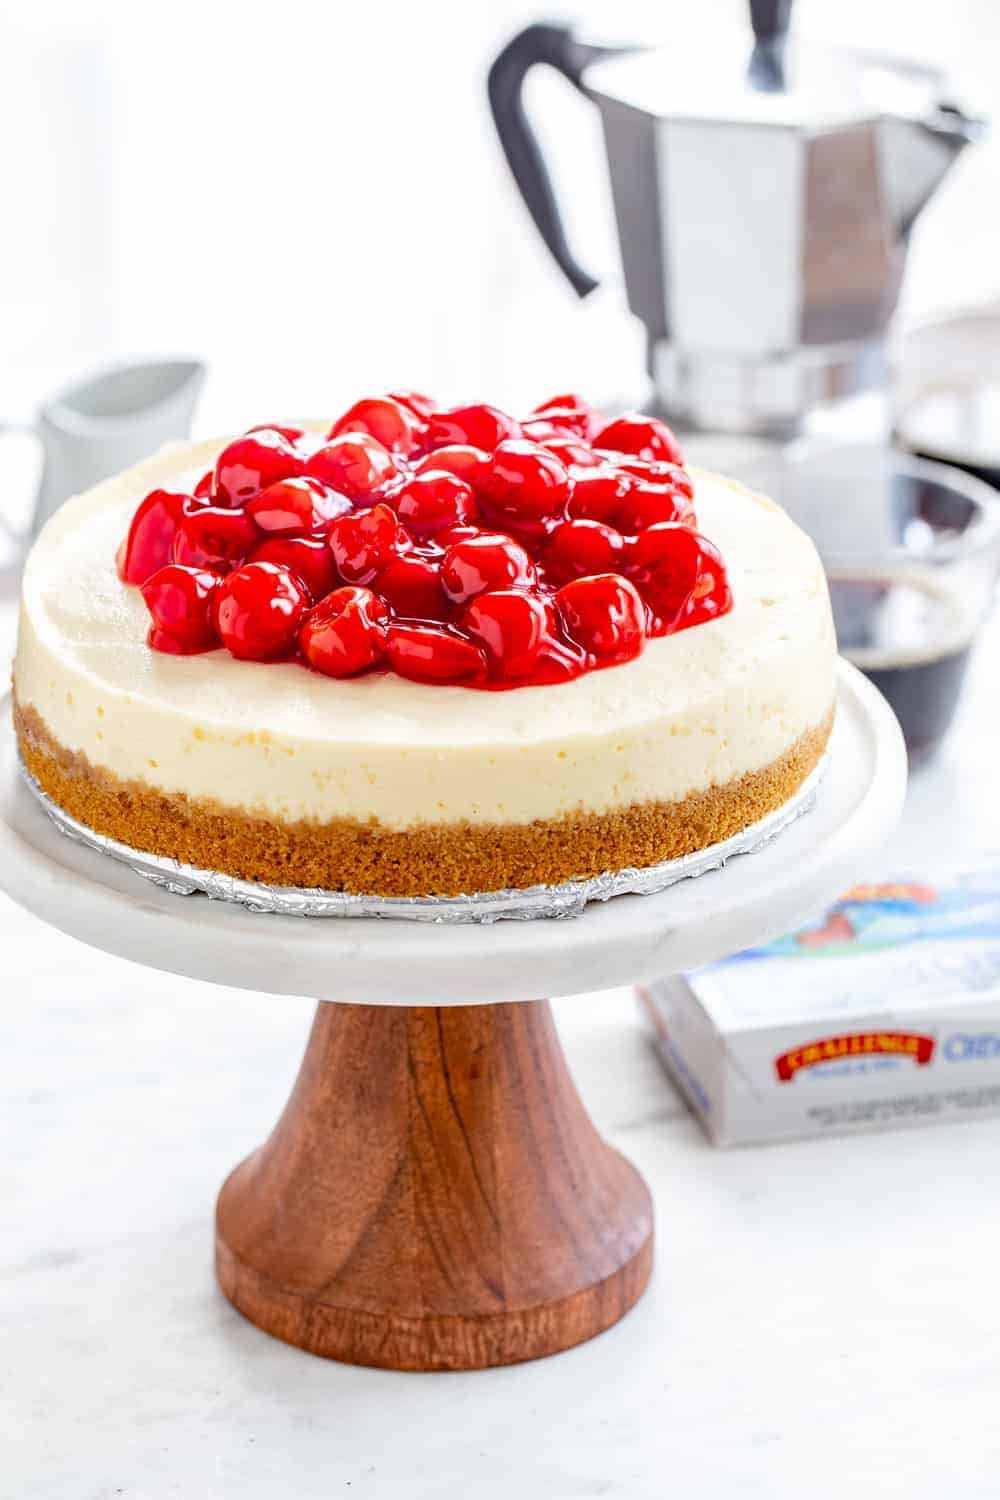 Instant Pot Cheesecake is creamy, smooth and simple to make in your electric pressure cooker.